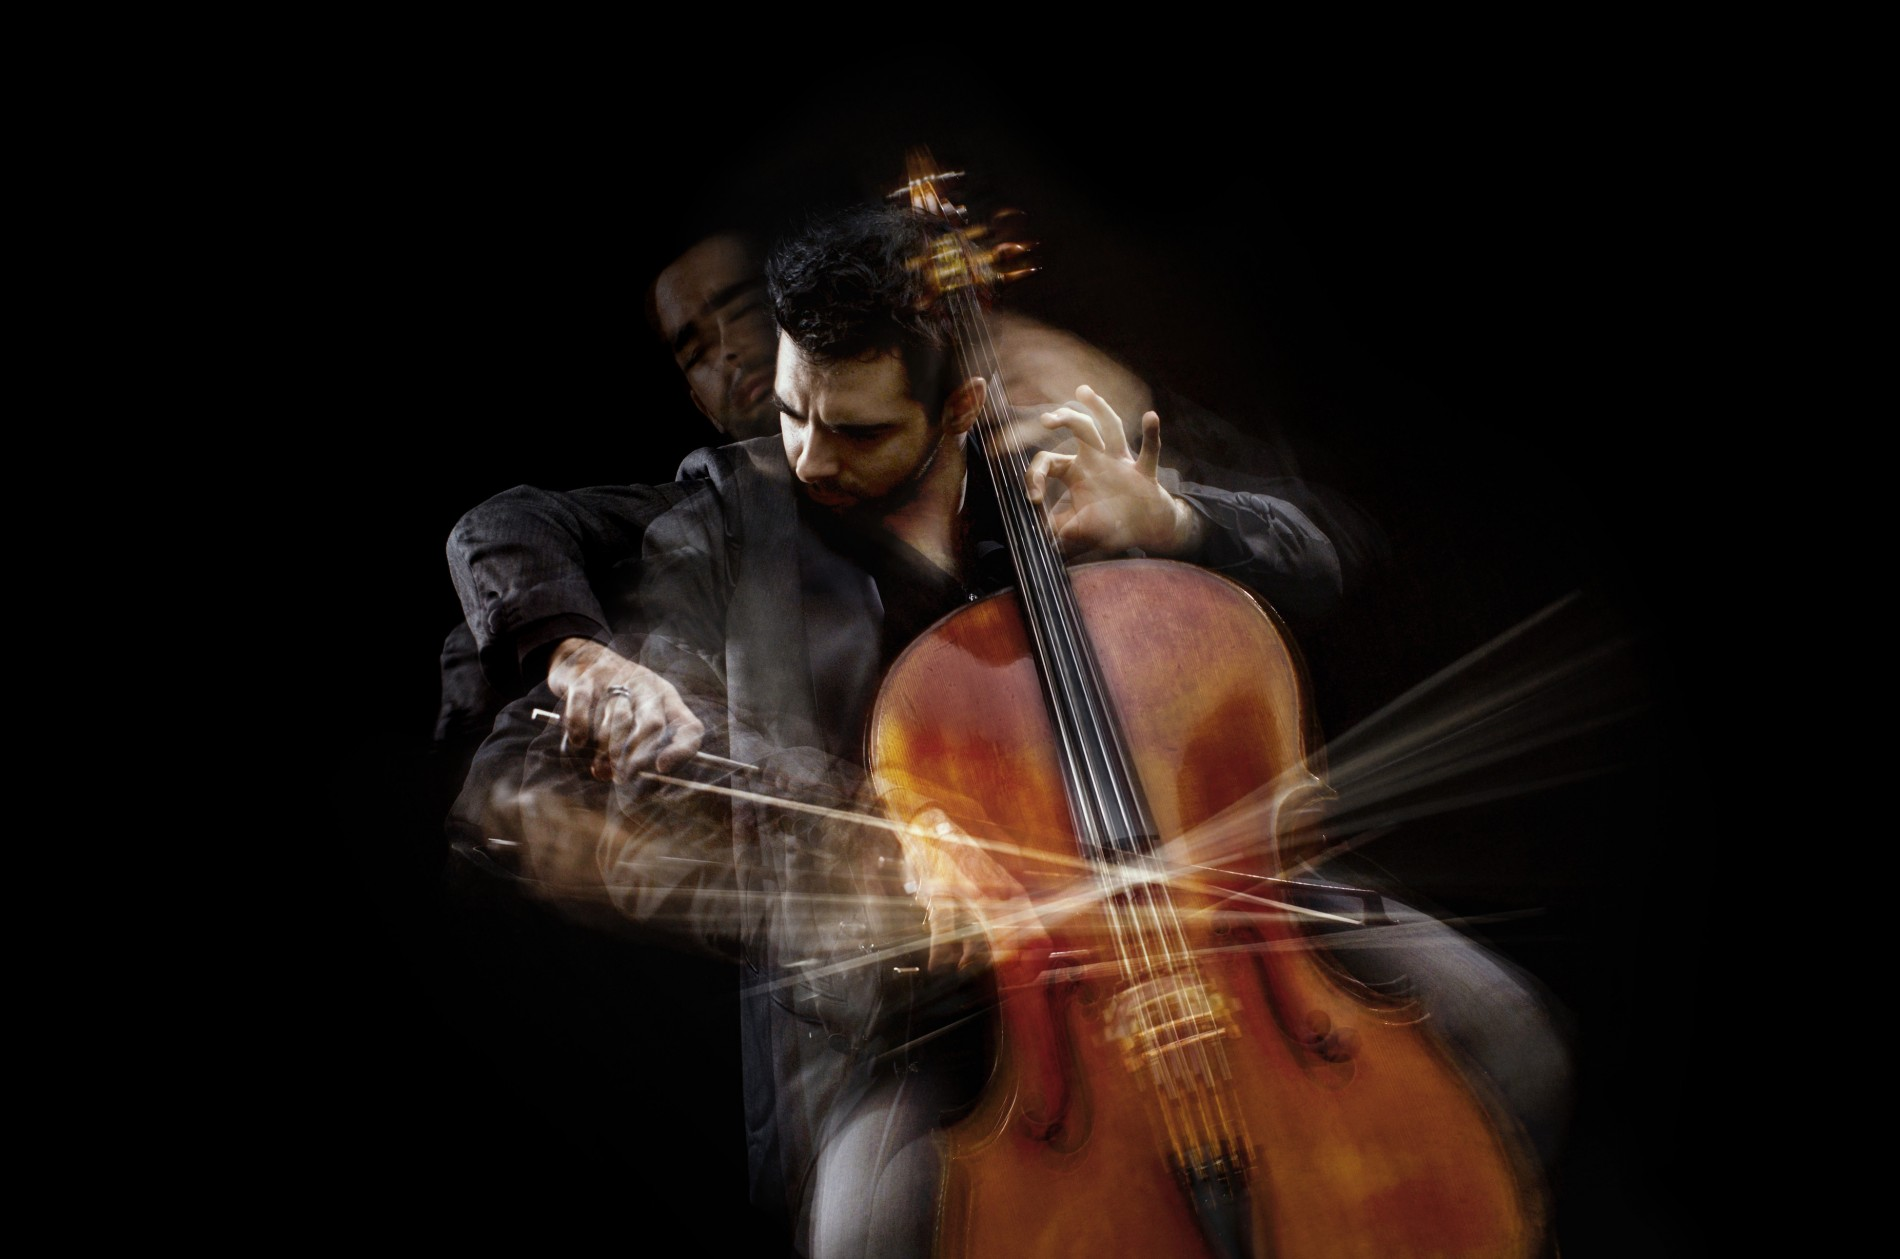 Pablo Ferrández playing the cello against black background